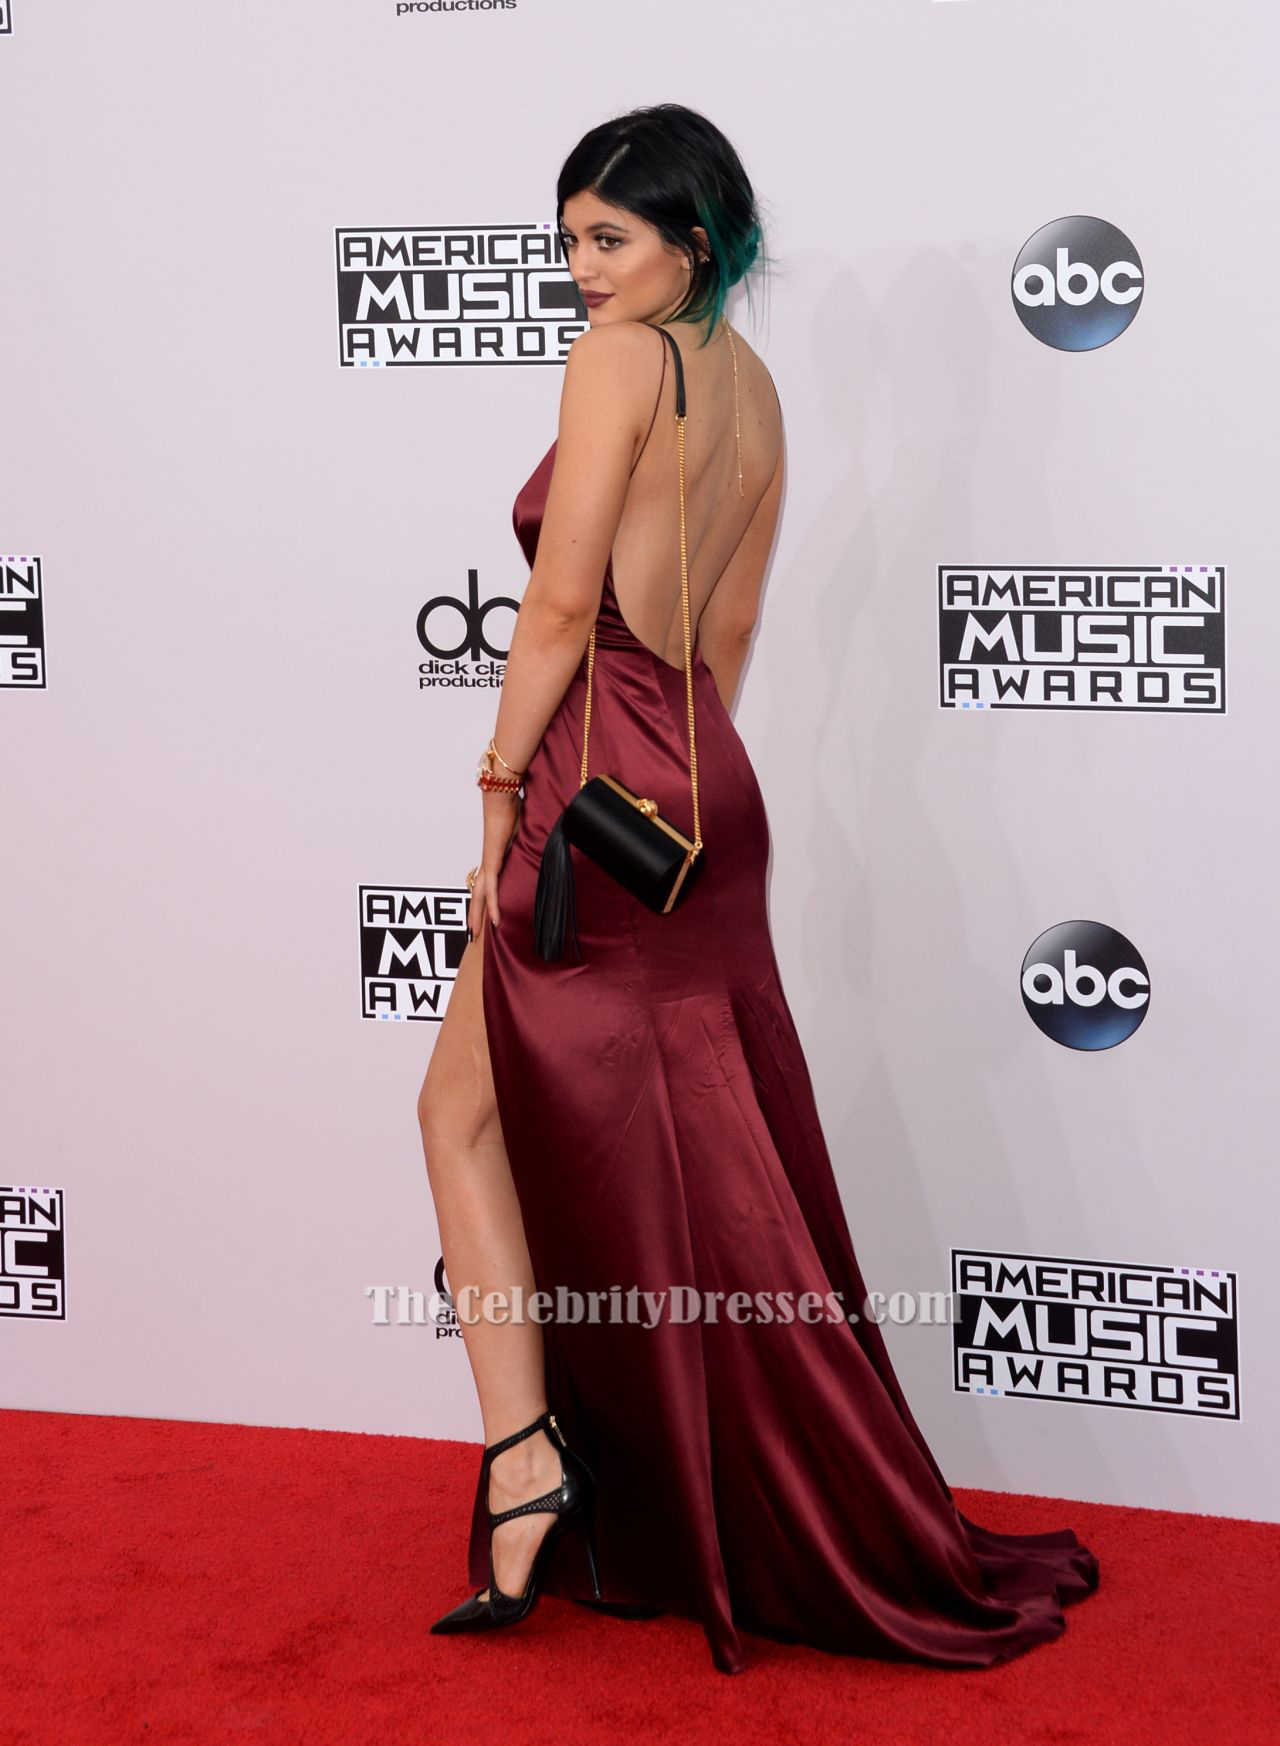 f6c9dad84cc Kylie Jenner Burgundy Evening Dress American Music Awards 2014 Red Carpet -  TheCelebrityDresses